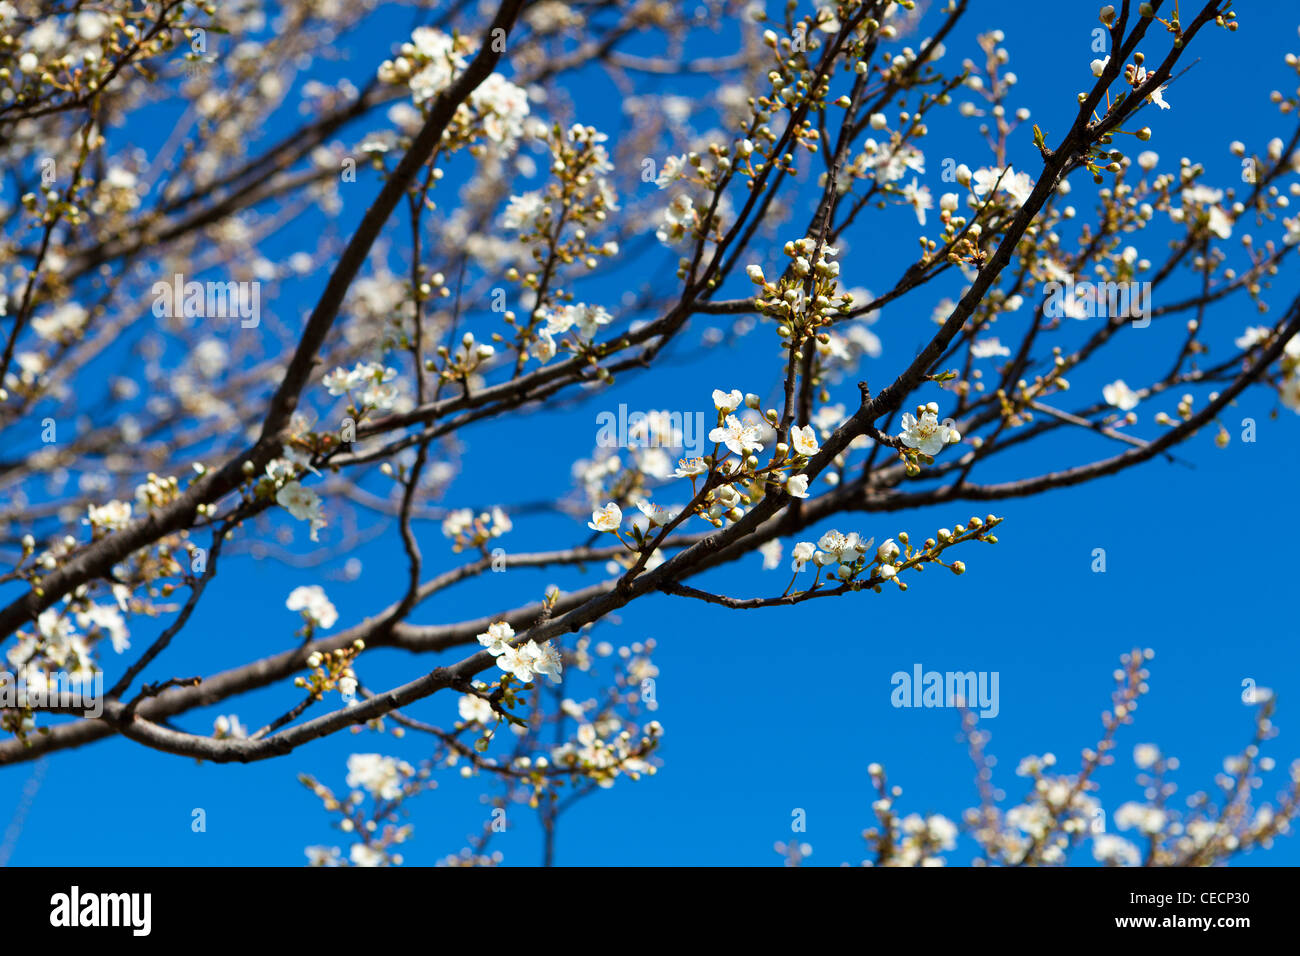 Spring flowers on a tree - Stock Image